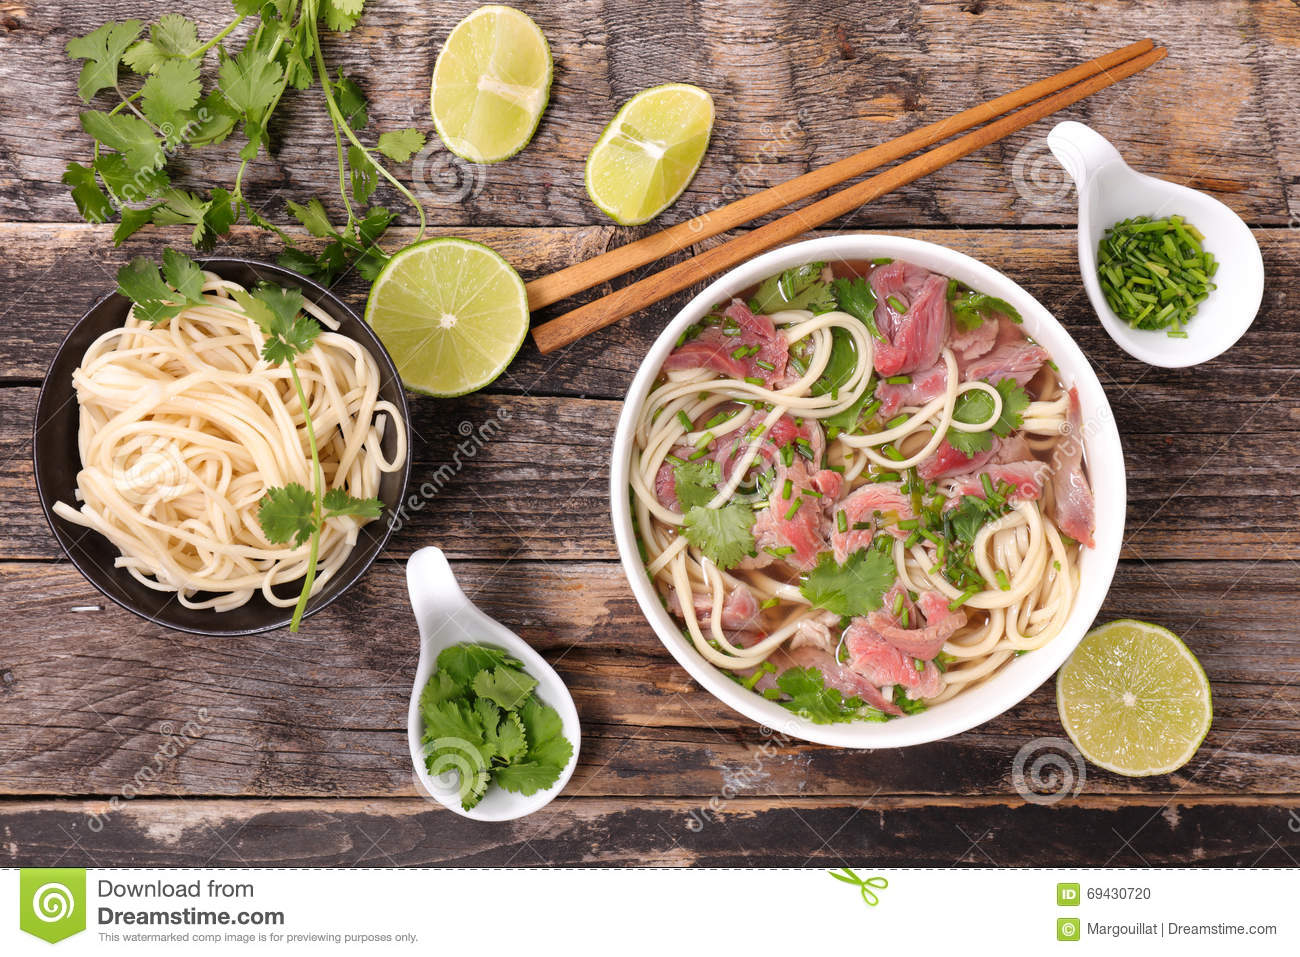 Beef pho and ingredient